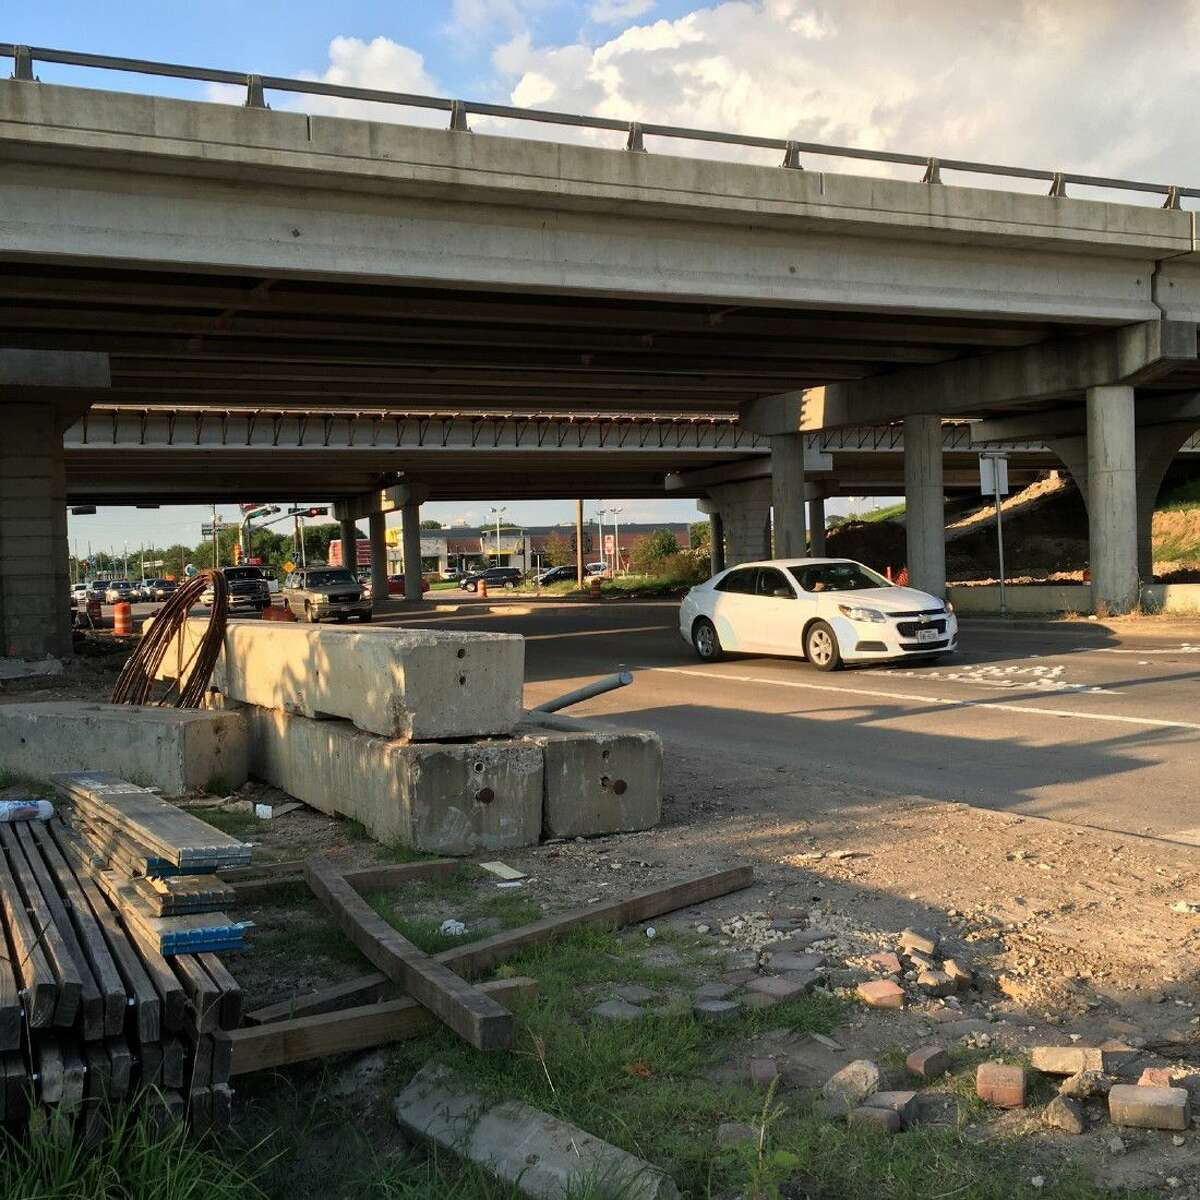 The Texas Department of Transportation recently opened the partial closure at the Texas 36 and U.S. 59 intersection so there are again three lanes open to traffic.